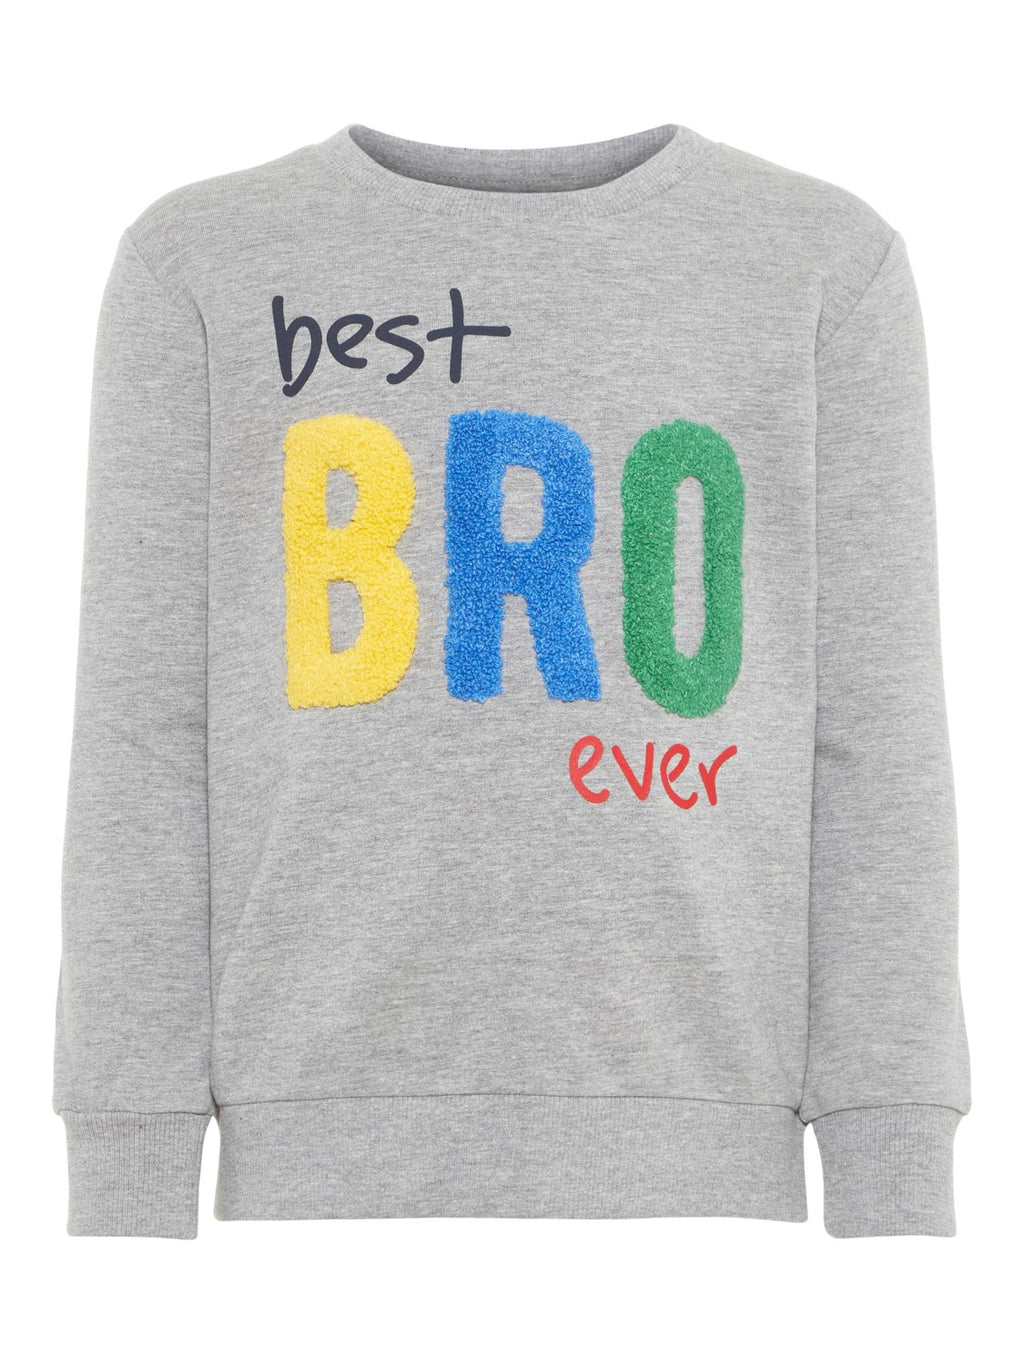 Name it : Sweater 'Best bro ever' Sweater Outlet Kamélie.be